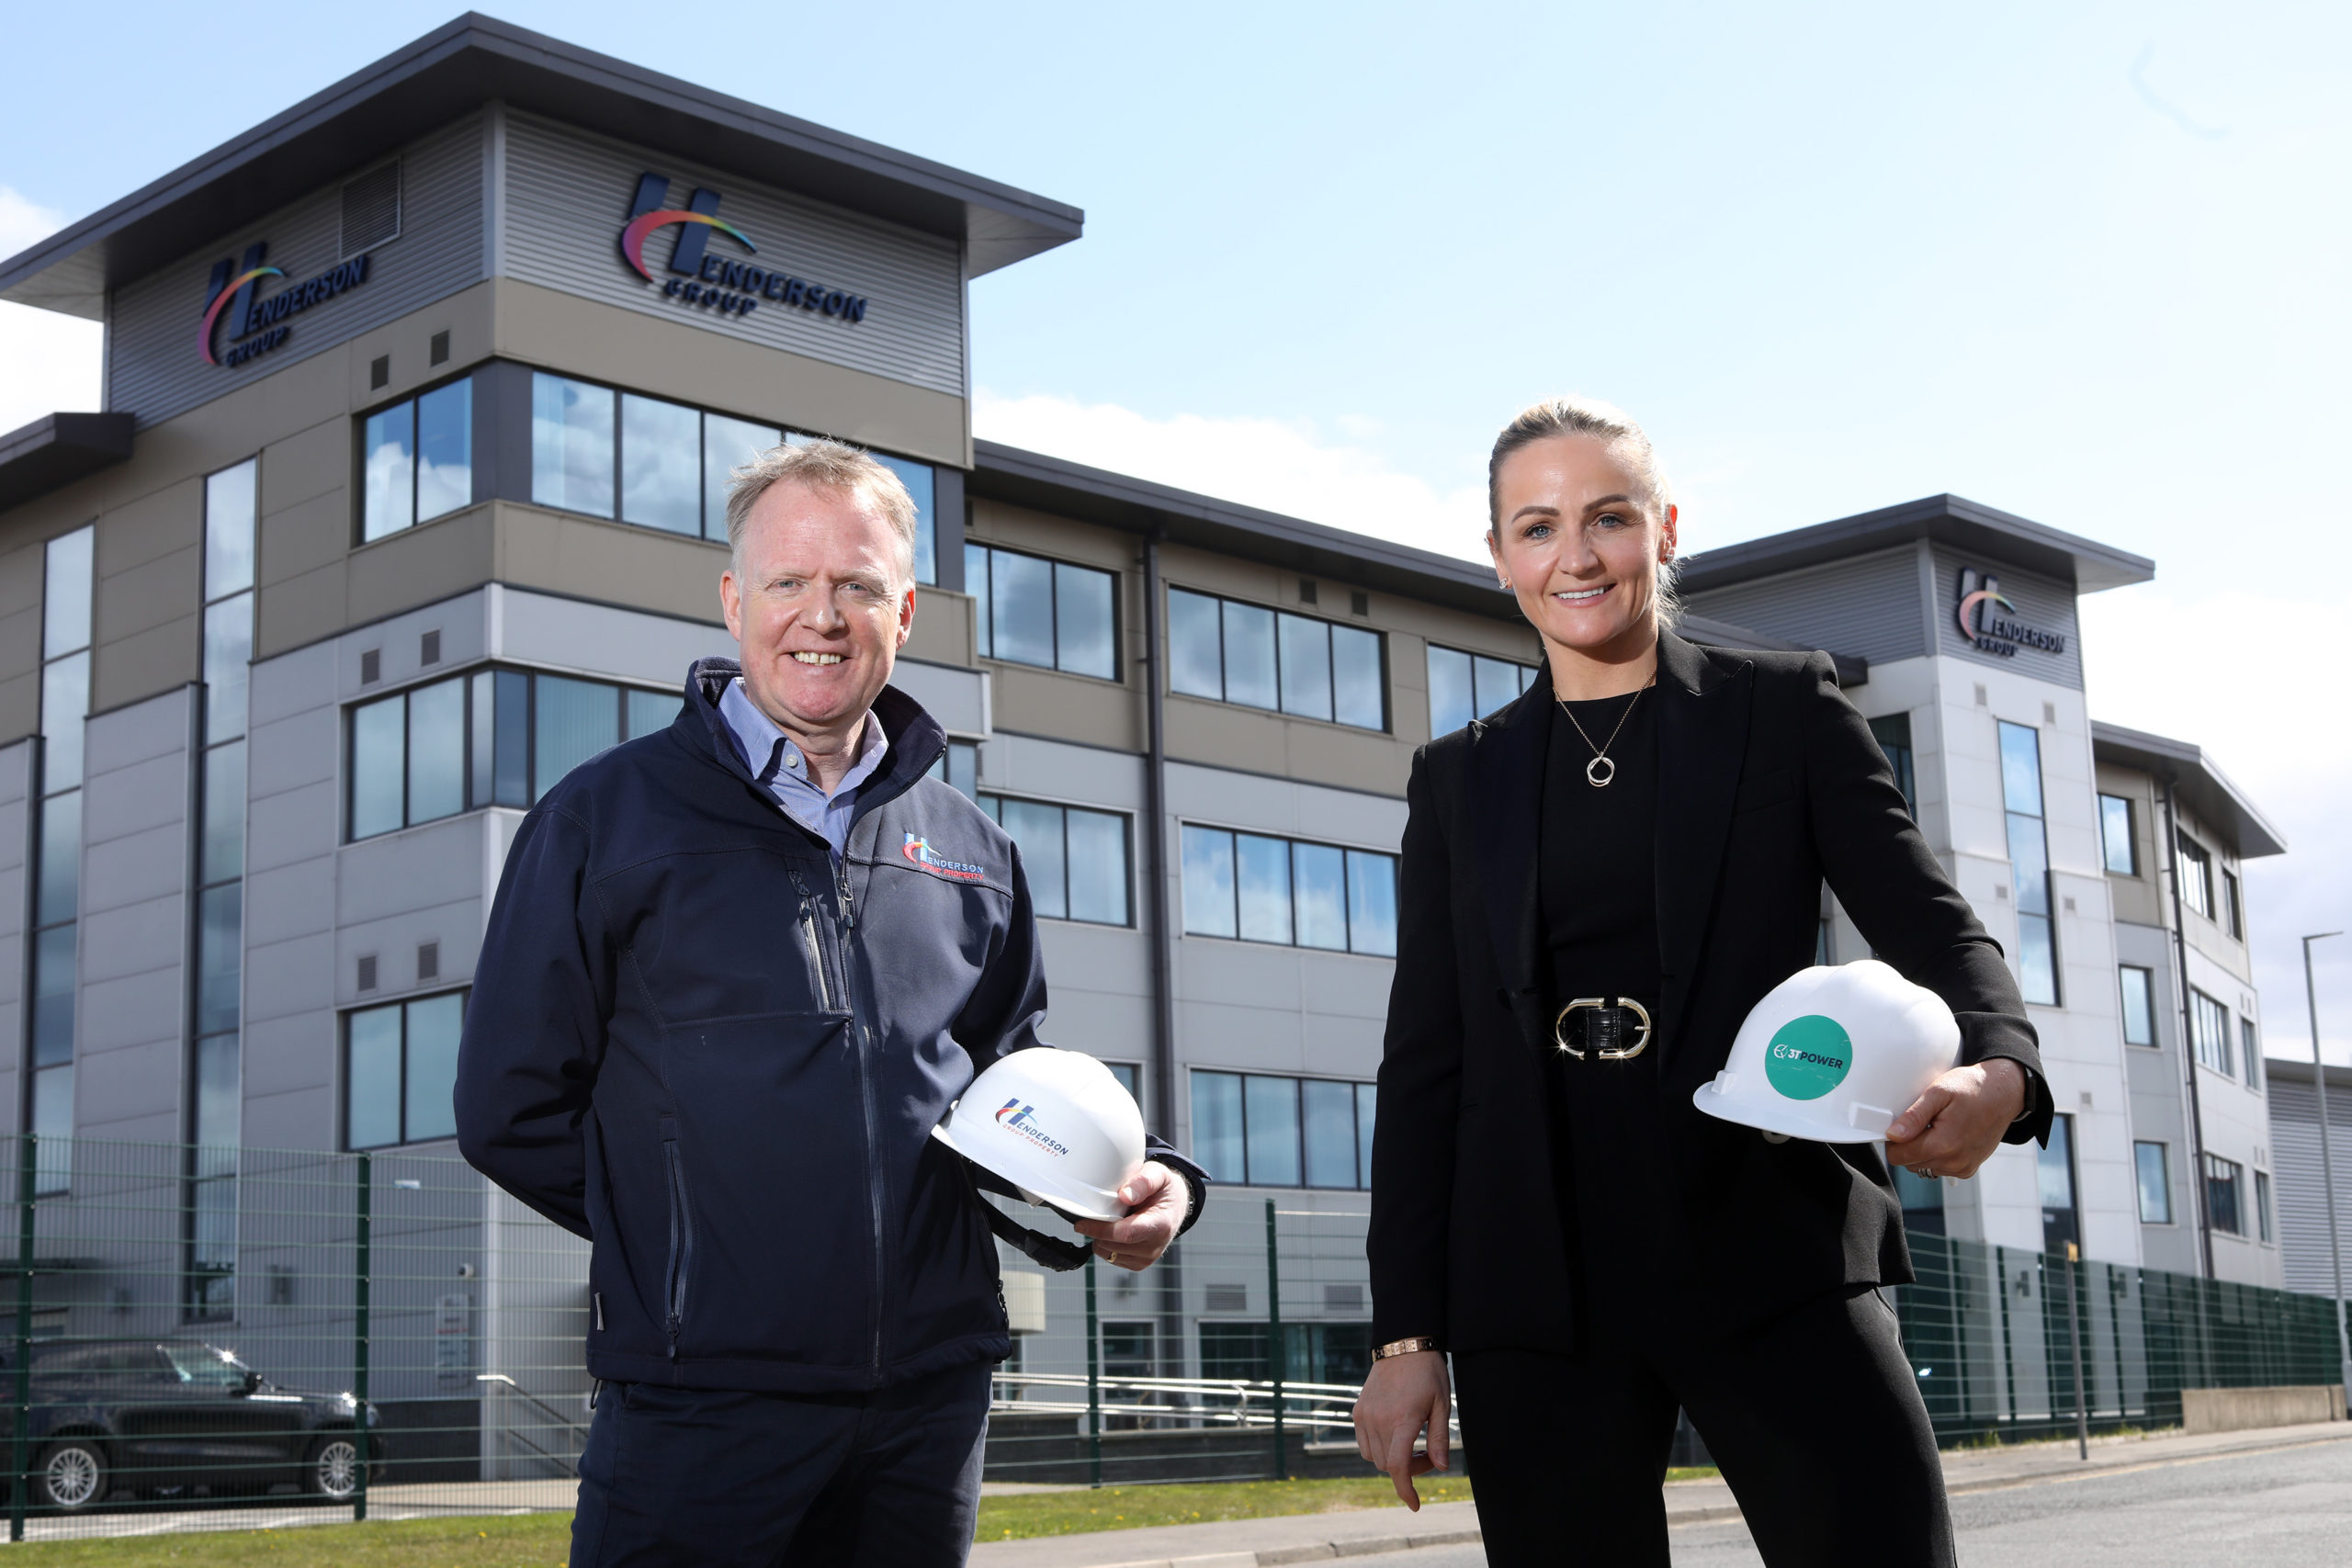 3T Power delivers 100% renewable electricity generated in Northern Ireland for Henderson Group